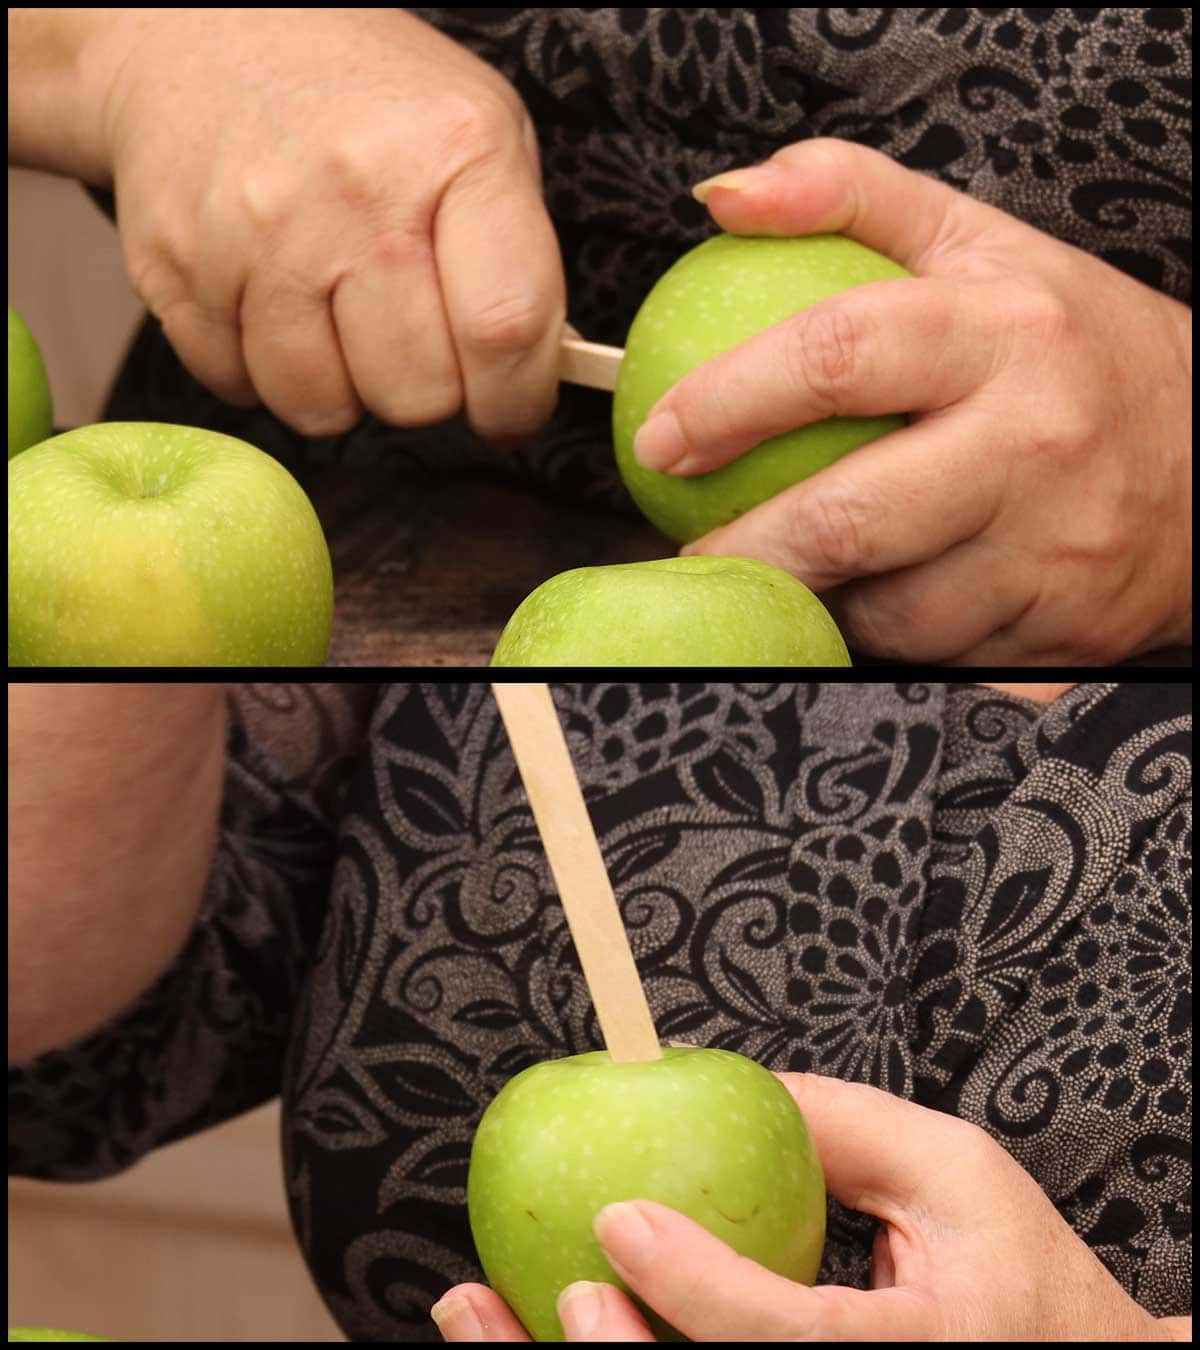 inserting popsicle sticks into apples for dipping